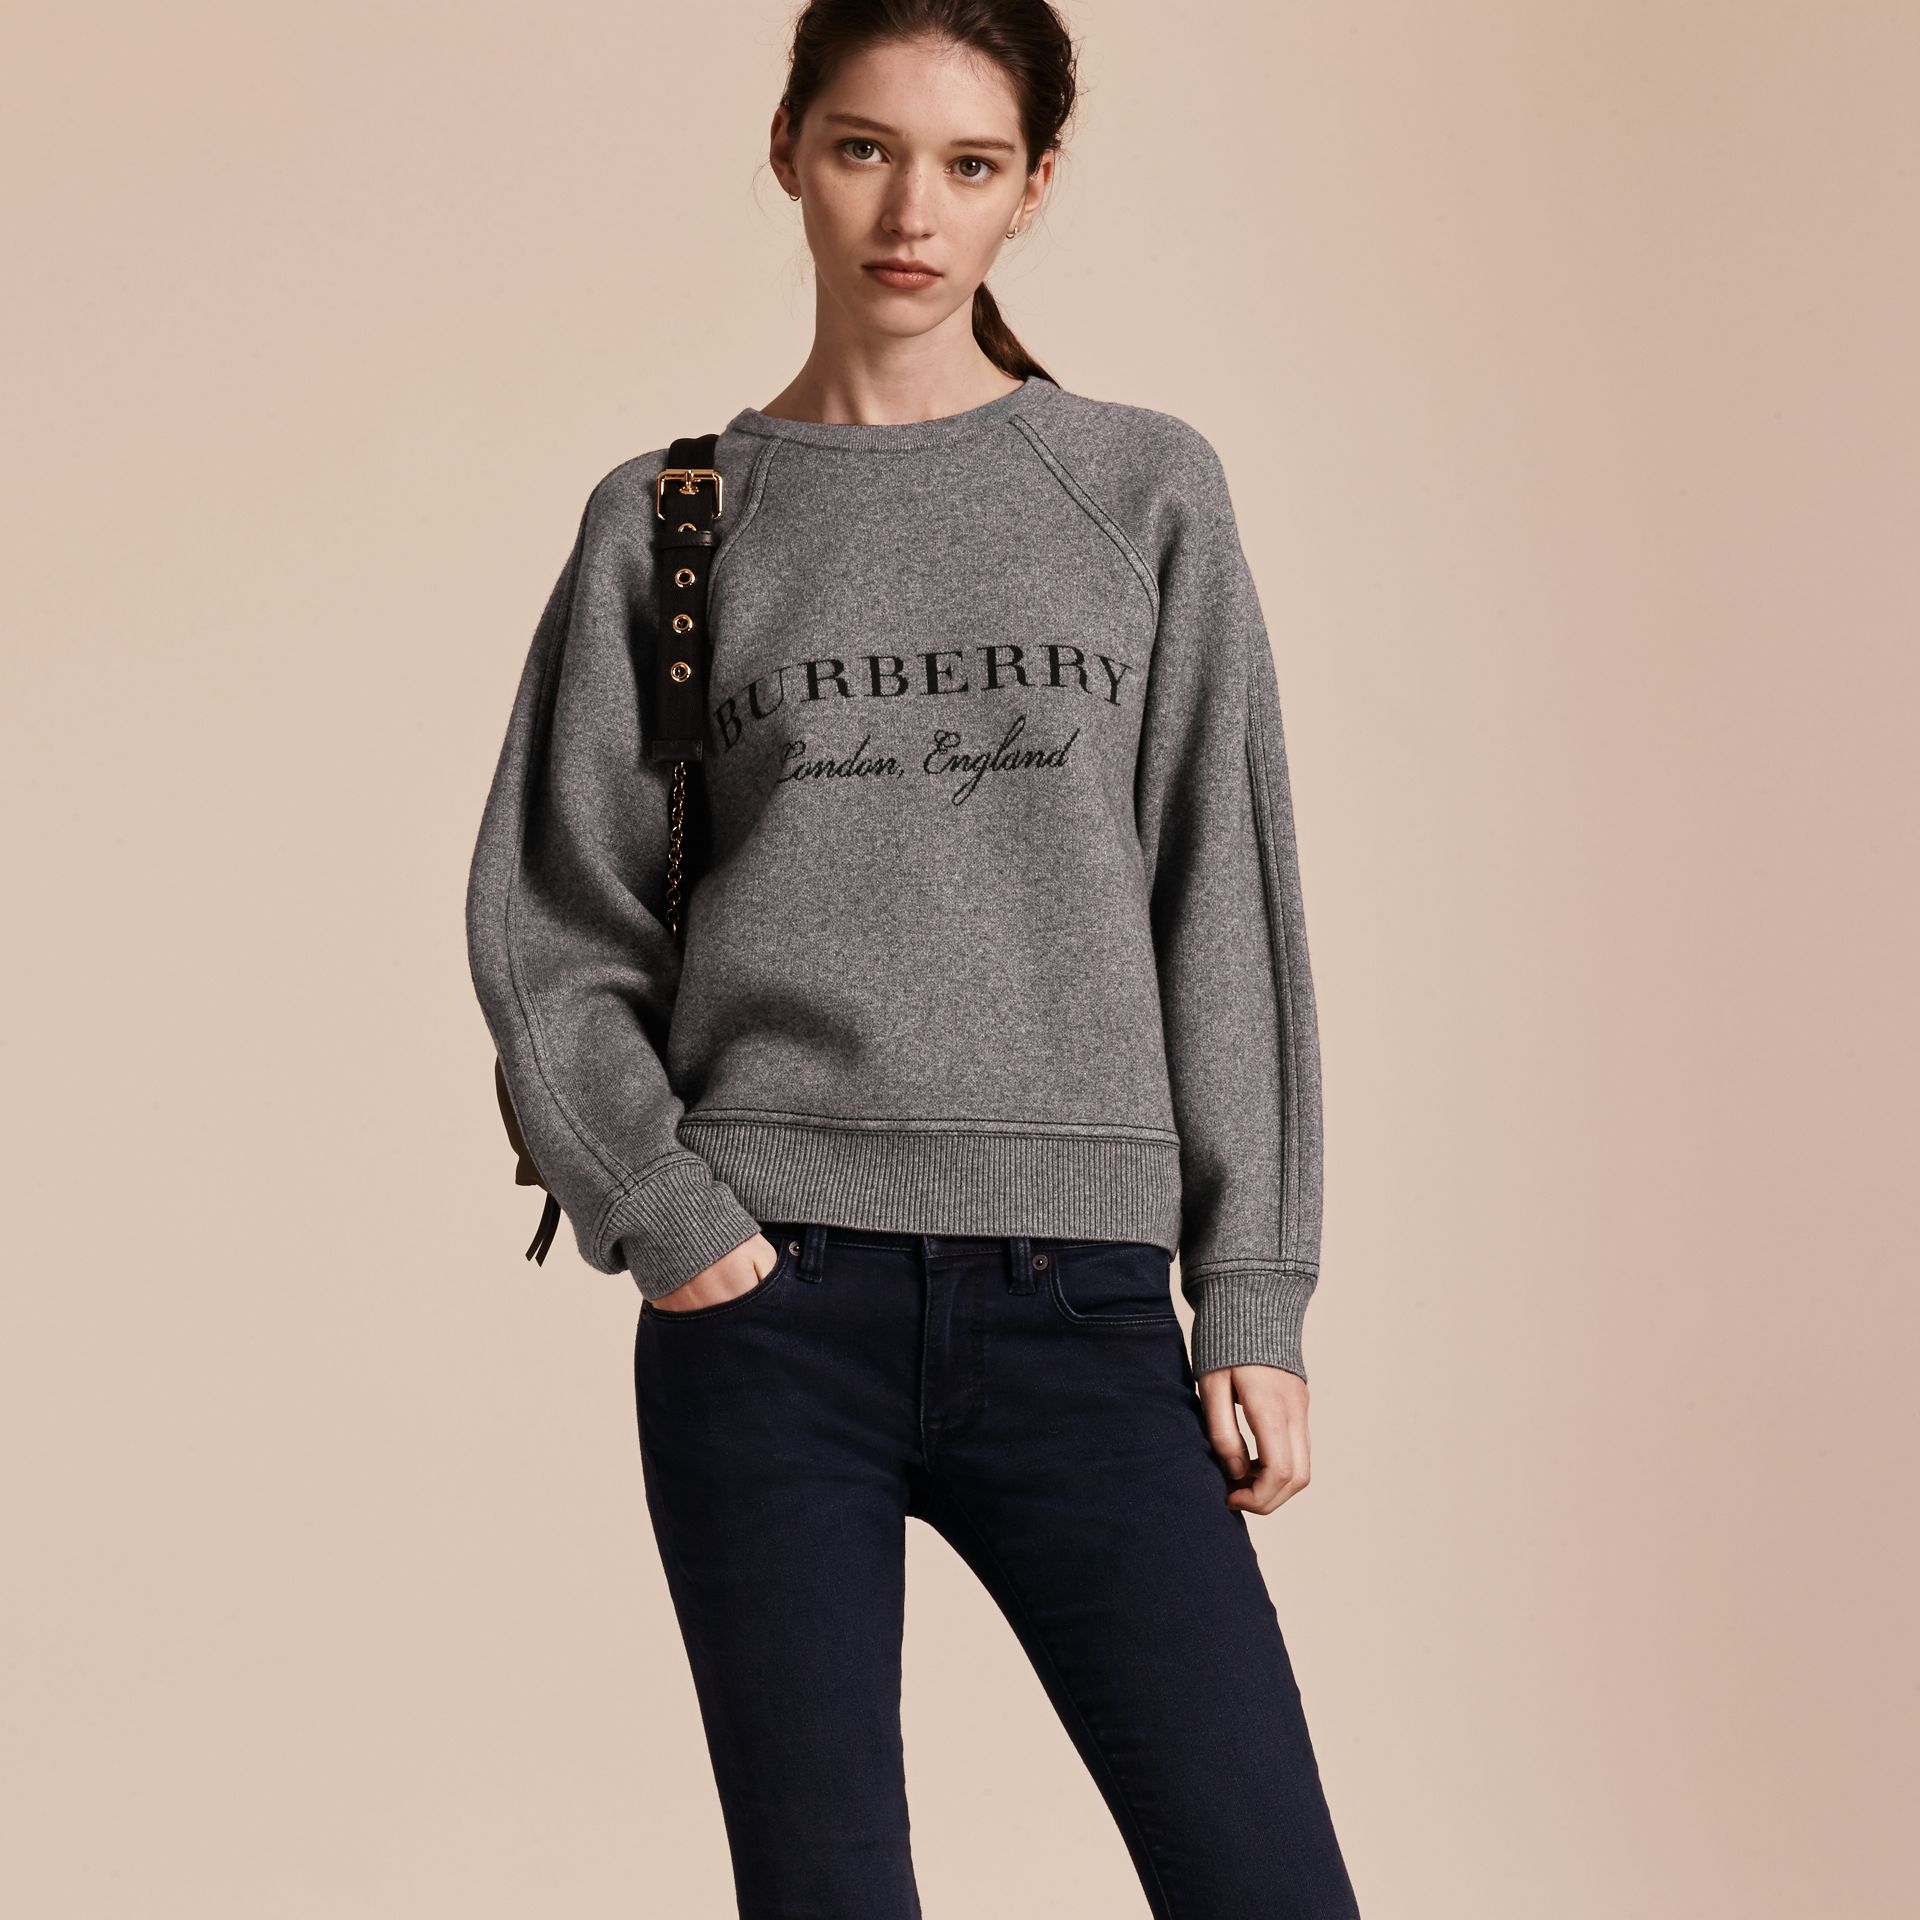 Topstitch Detail Wool Cashmere Blend Sweater in Mid Grey Melange - Women | Burberry - gallery image 6